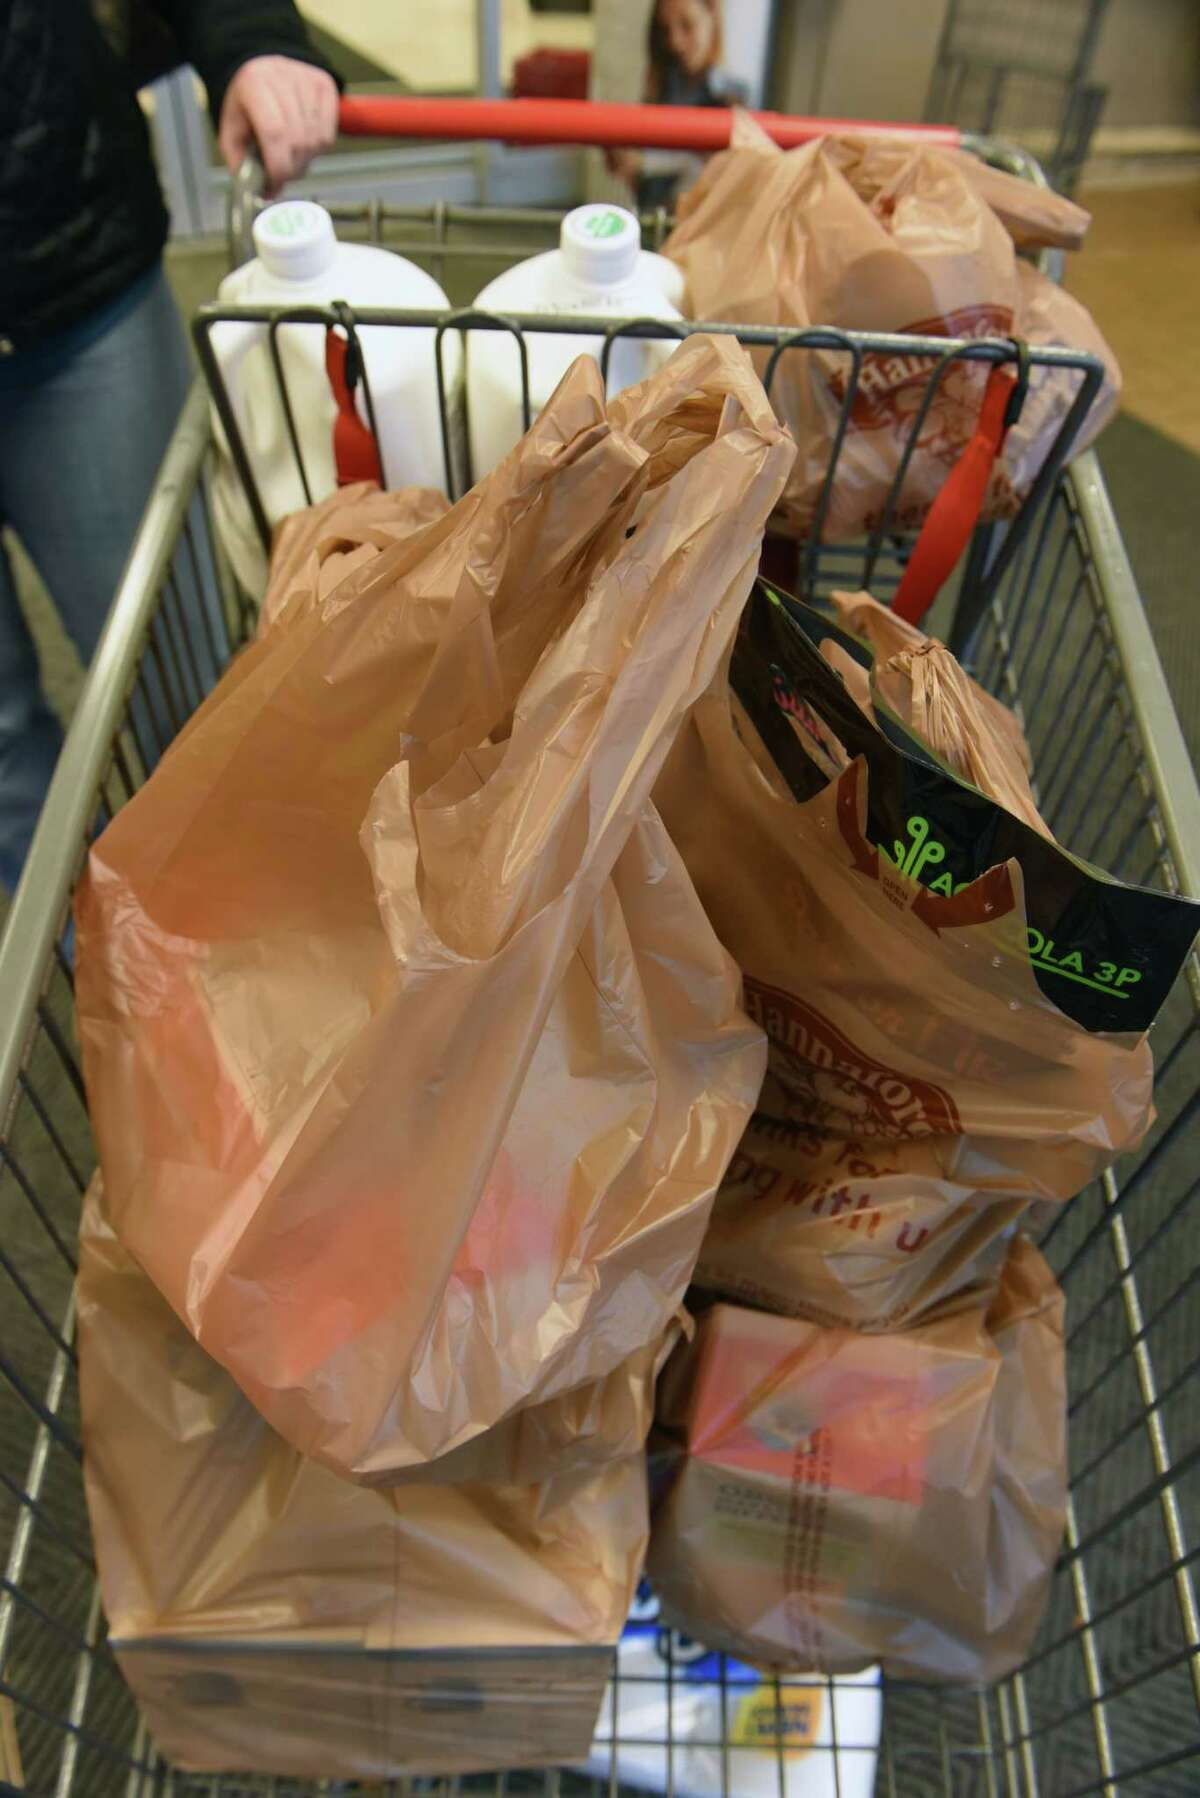 Plastic disposable shopping bags are seen in a customer's cart at a Hannaford grocery store on Thursday, Jan. 24, 2019 in Clifton Park, N.Y. (Lori Van Buren/Times Union)